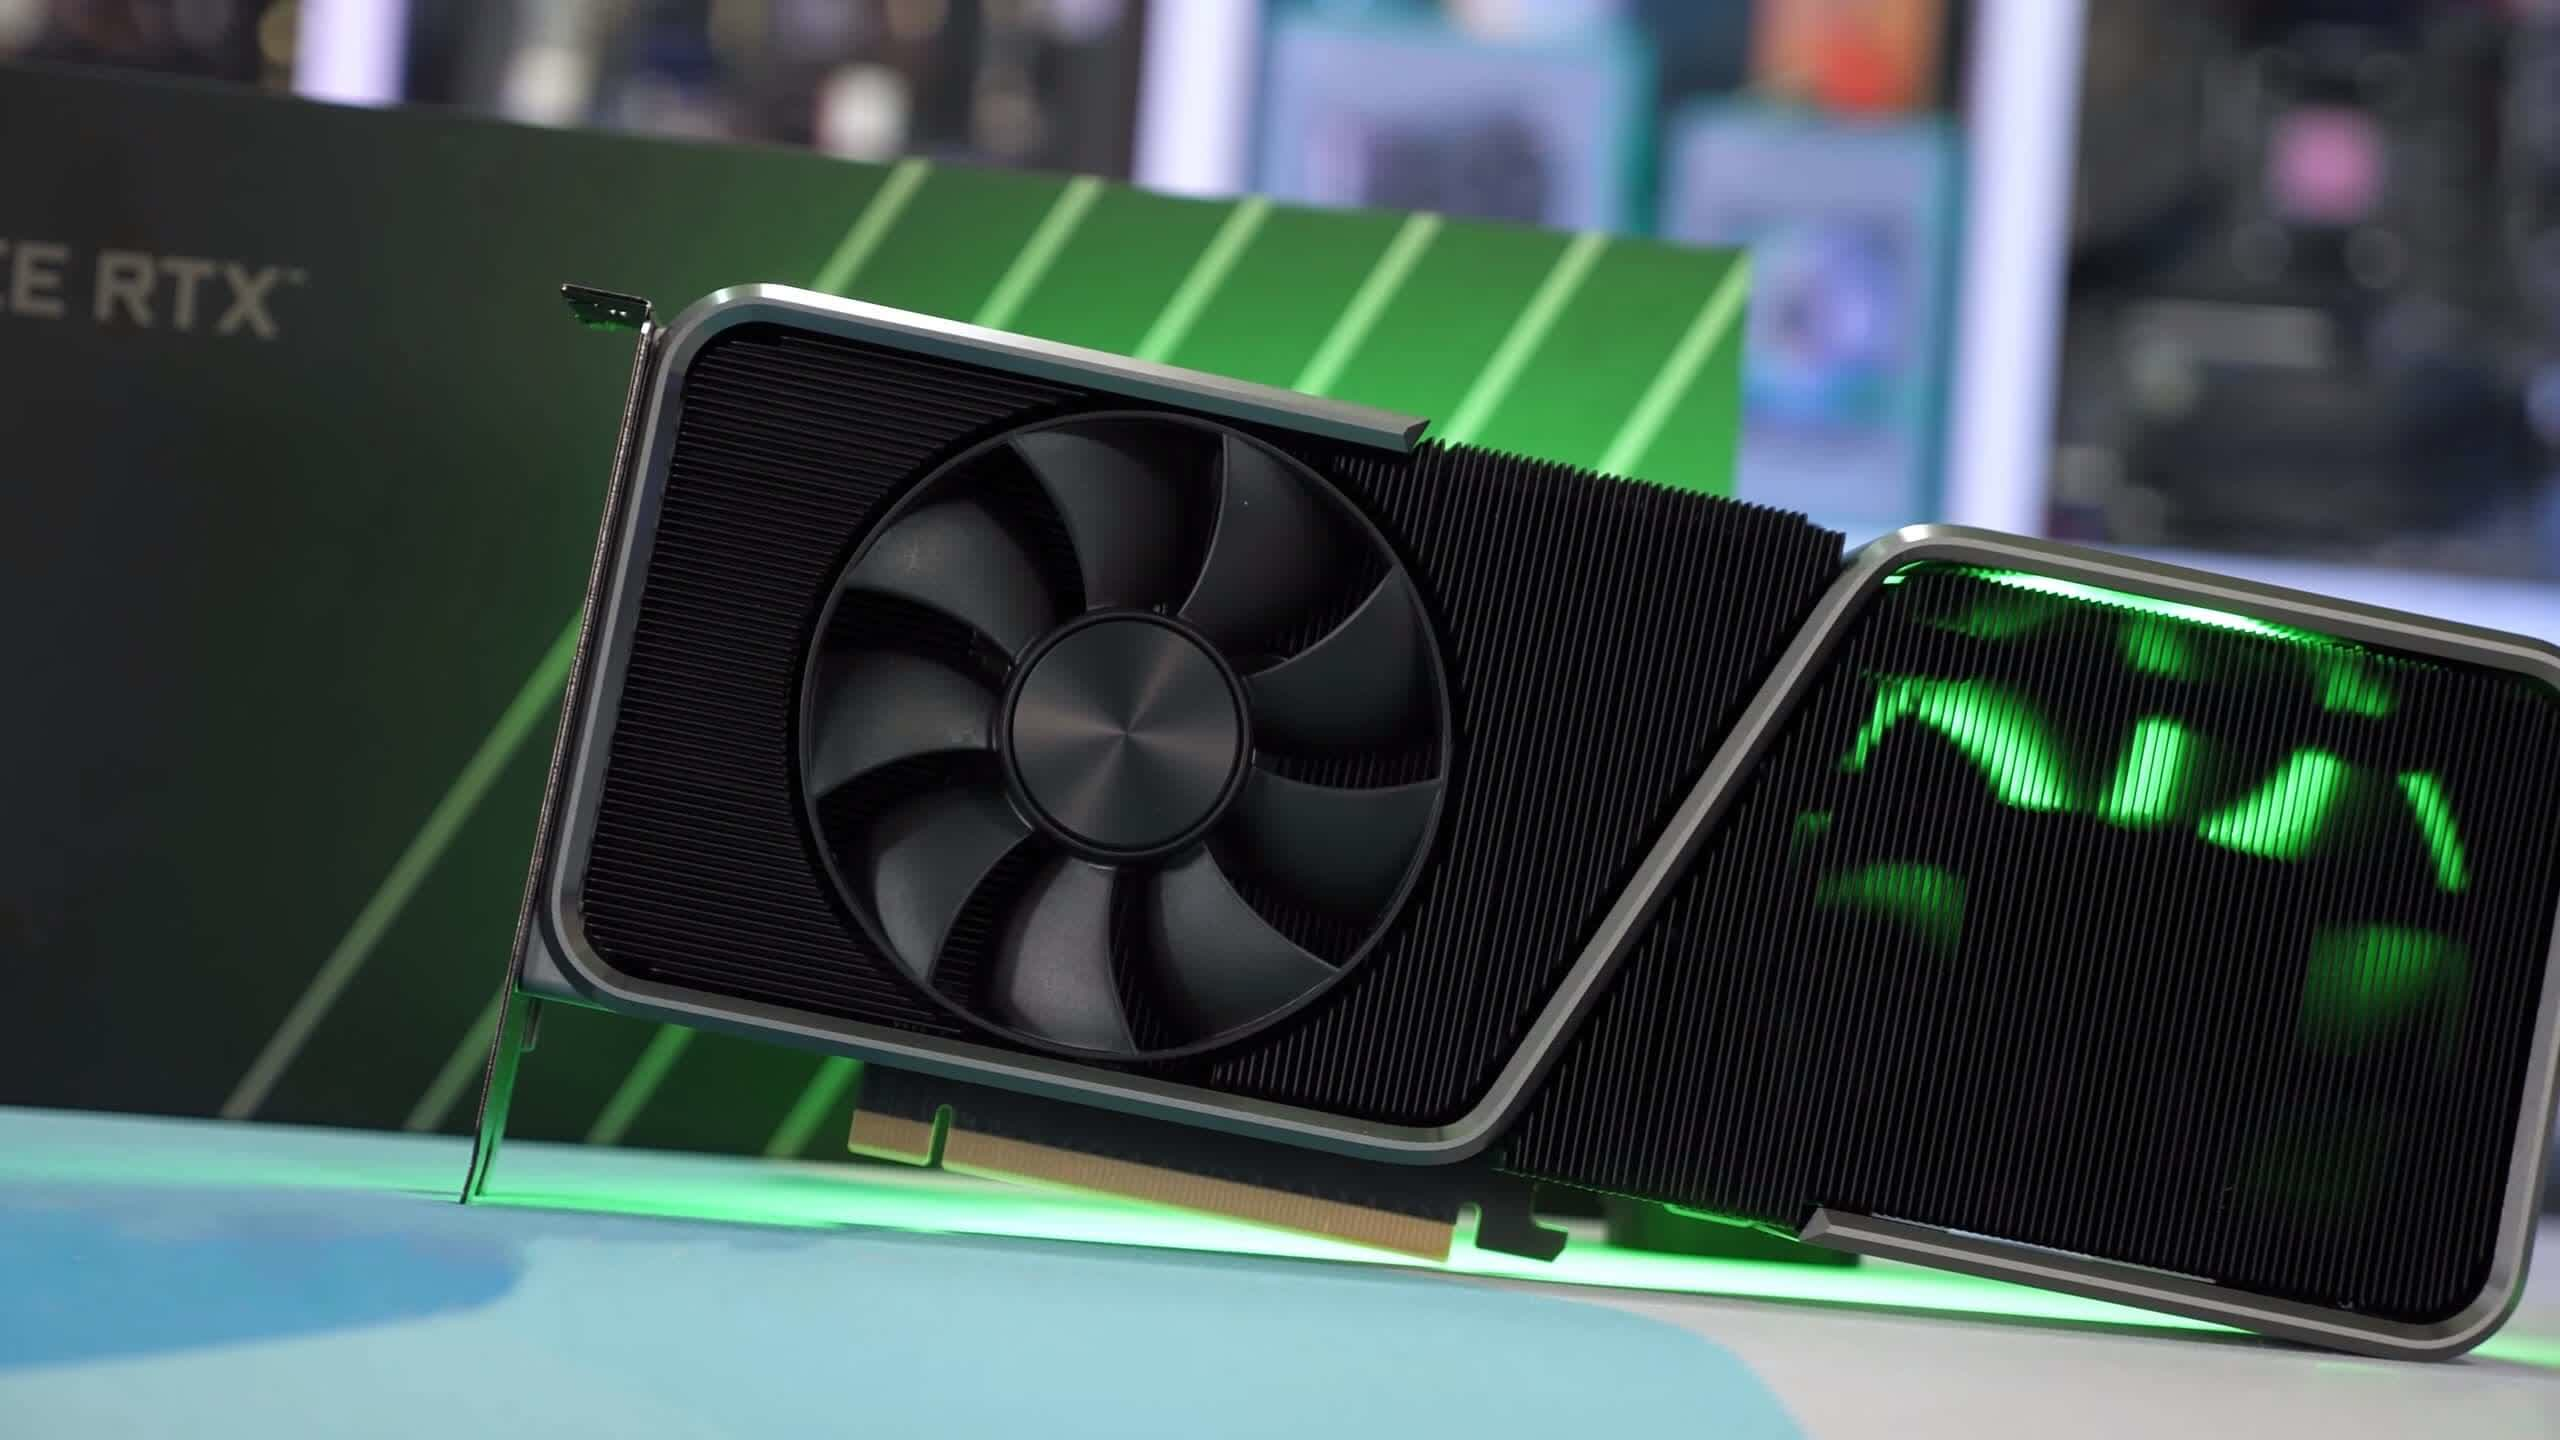 Best Buy will have Nvidia RTX 30 Series cards in stock at select stores tomorrow